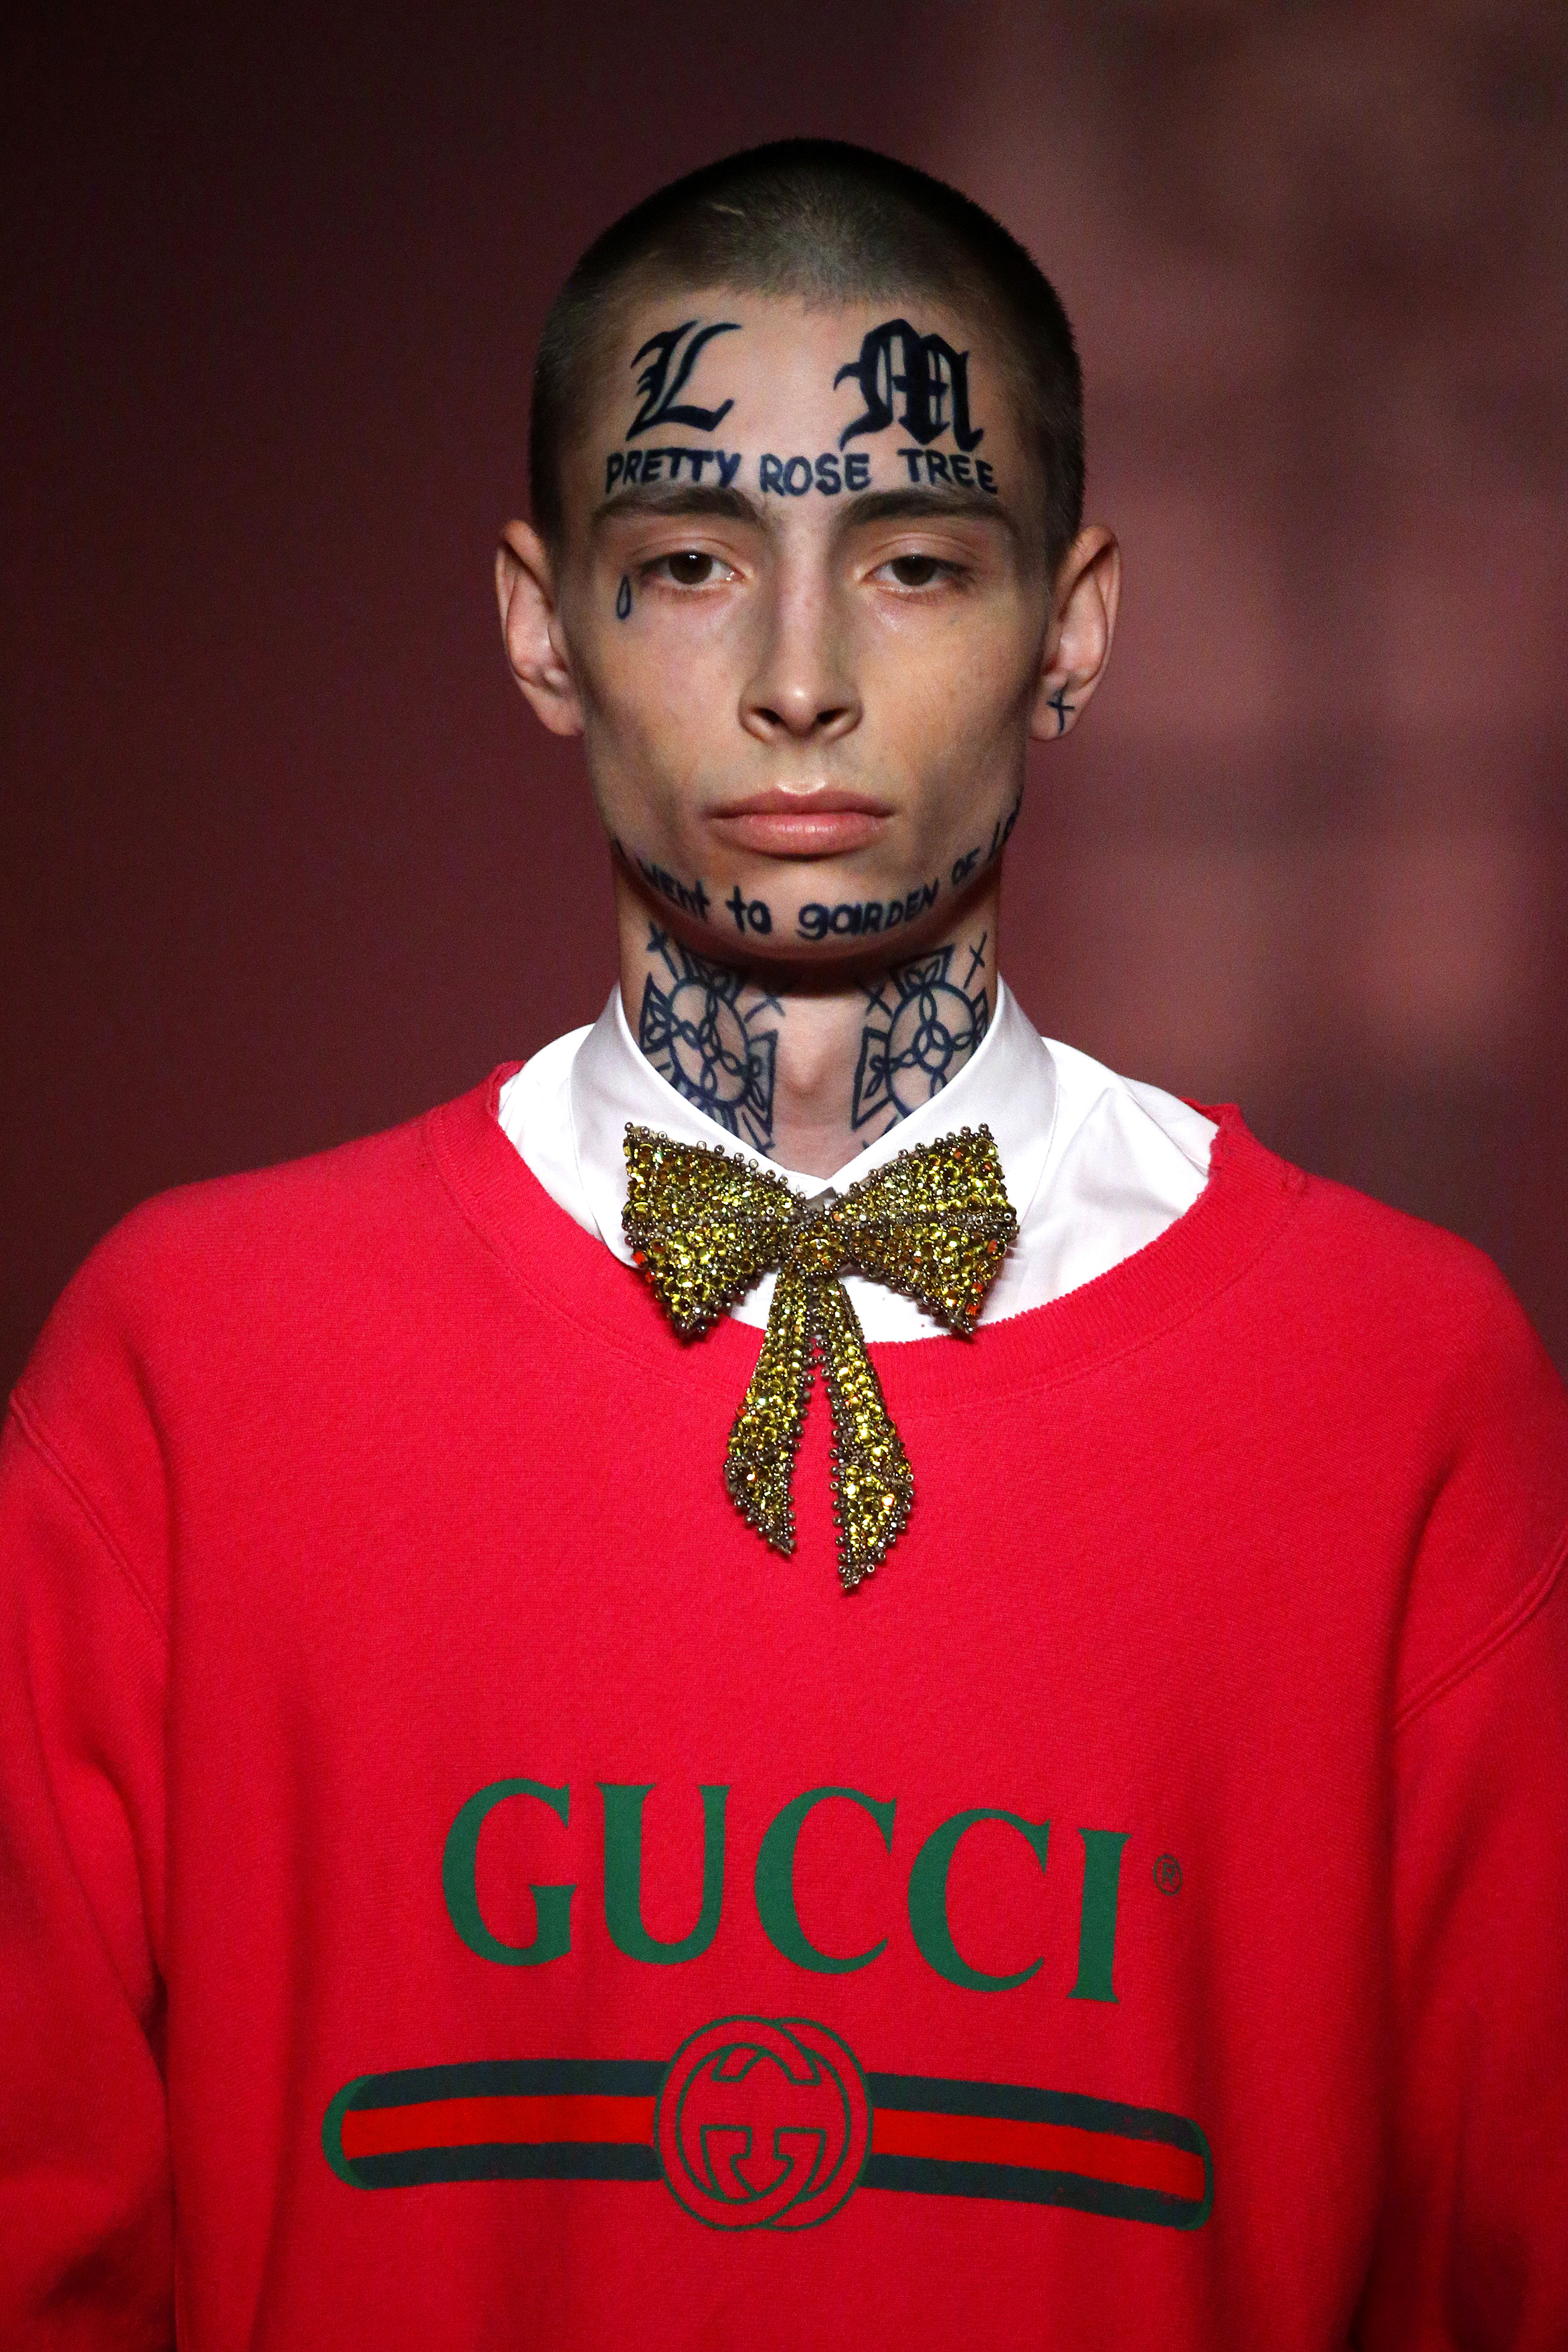 "<p>The star of Gucci's spring/summer '17 campaign boasts more than sculpted cheekbones and piercing eyes.</p> <p>Latvian model Lorens caused a stir on the runway at the Gucci show at <a href=""https://style.nine.com.au/2015/09/24/09/32/gucci-ss16-runway"" target=""_blank"">Milan Fashion Week</a> in September with William Blake quotations tattooed across his face.</p> <p>The bold look earned the shy 18-year-old pride of place in the Italian label's latest campaign photographed by Glen Luchford. The shoot takes place in creative director Alessandro Michele's home town of Rome.</p> <p>Away from the Gucci fairy dust Lorens is slightly less intimidating, with the tattoos washing off to reveal a face any mother could love.</p> <p>The campaign, which also features tigers, lions and the Trevi Fountain will debut on January 1.</p> <p>See the Gucci campaign images here, along with other, more permanent, fashion ink.</p> <p> </p>"